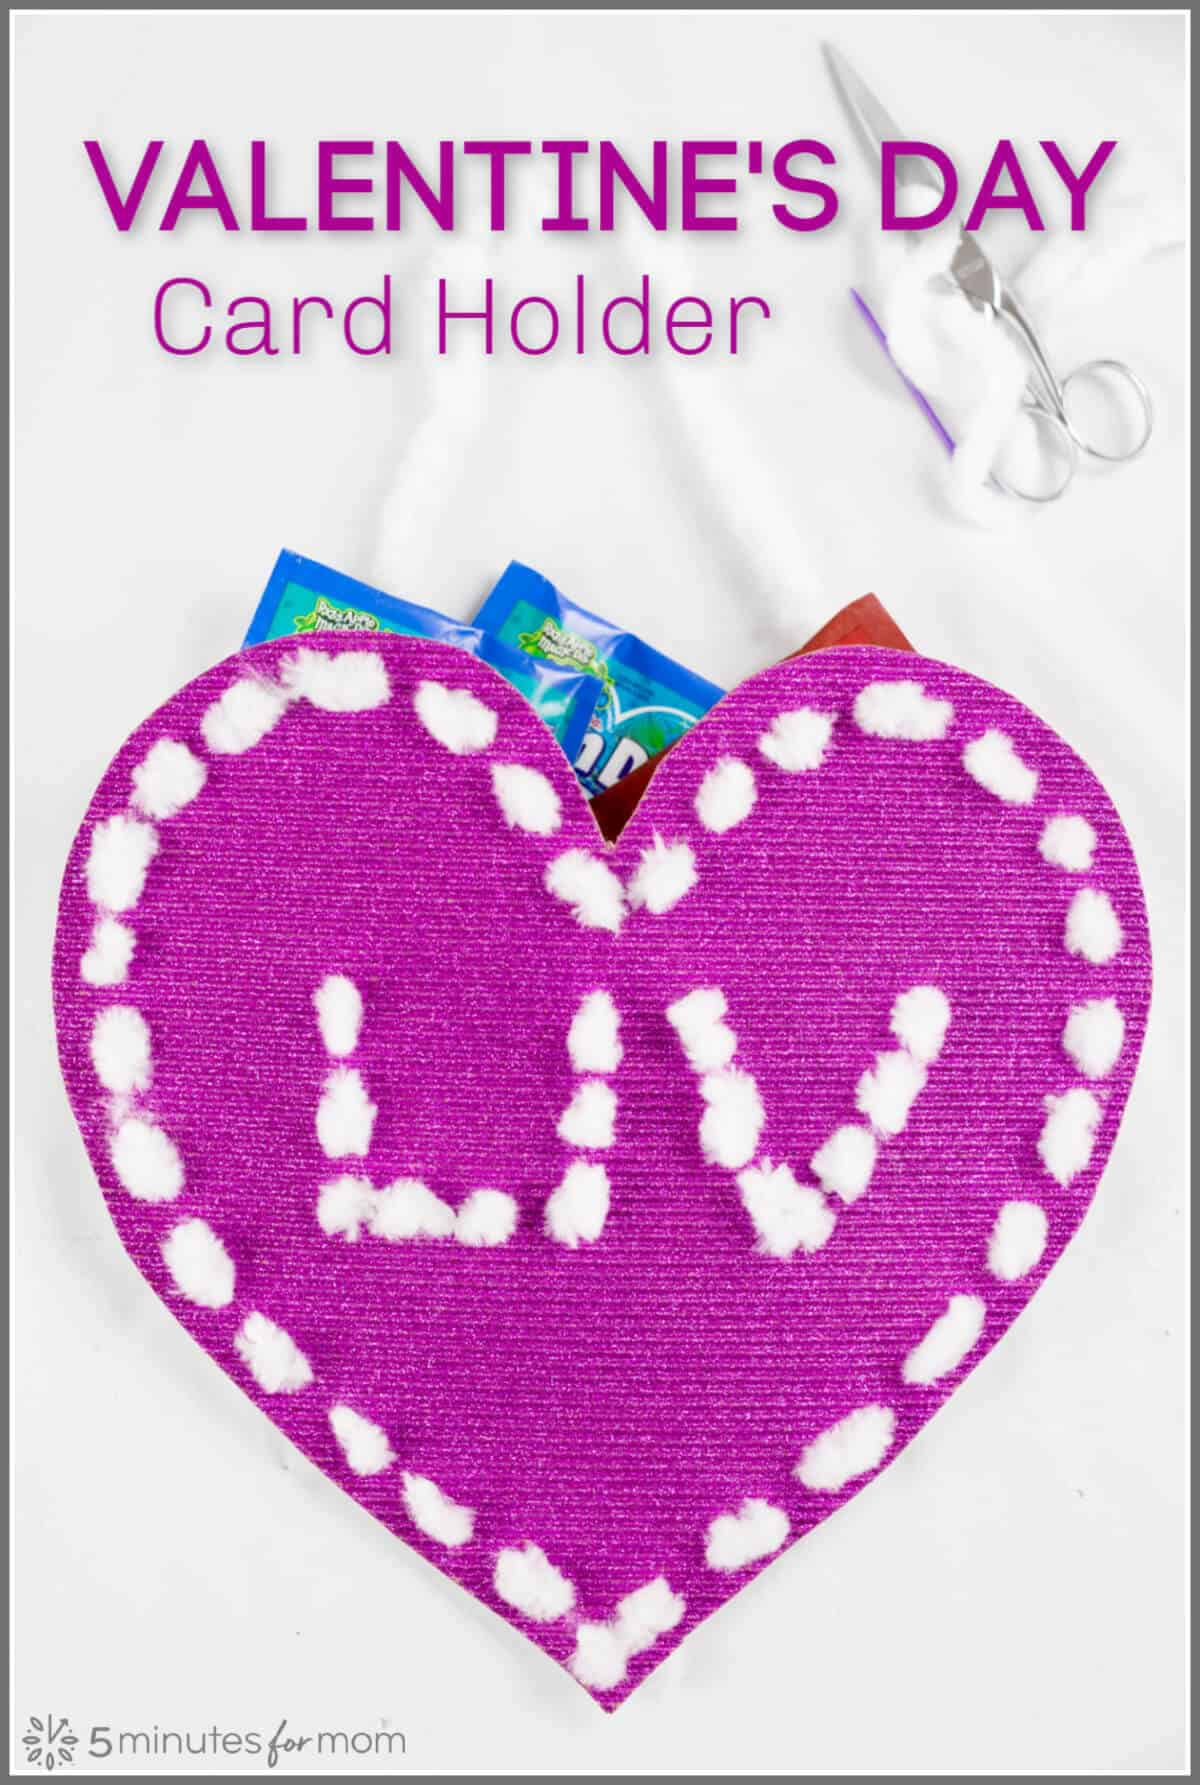 Valentine Card Holder - A fun and easy Valentine's Day card holder idea for school or home.